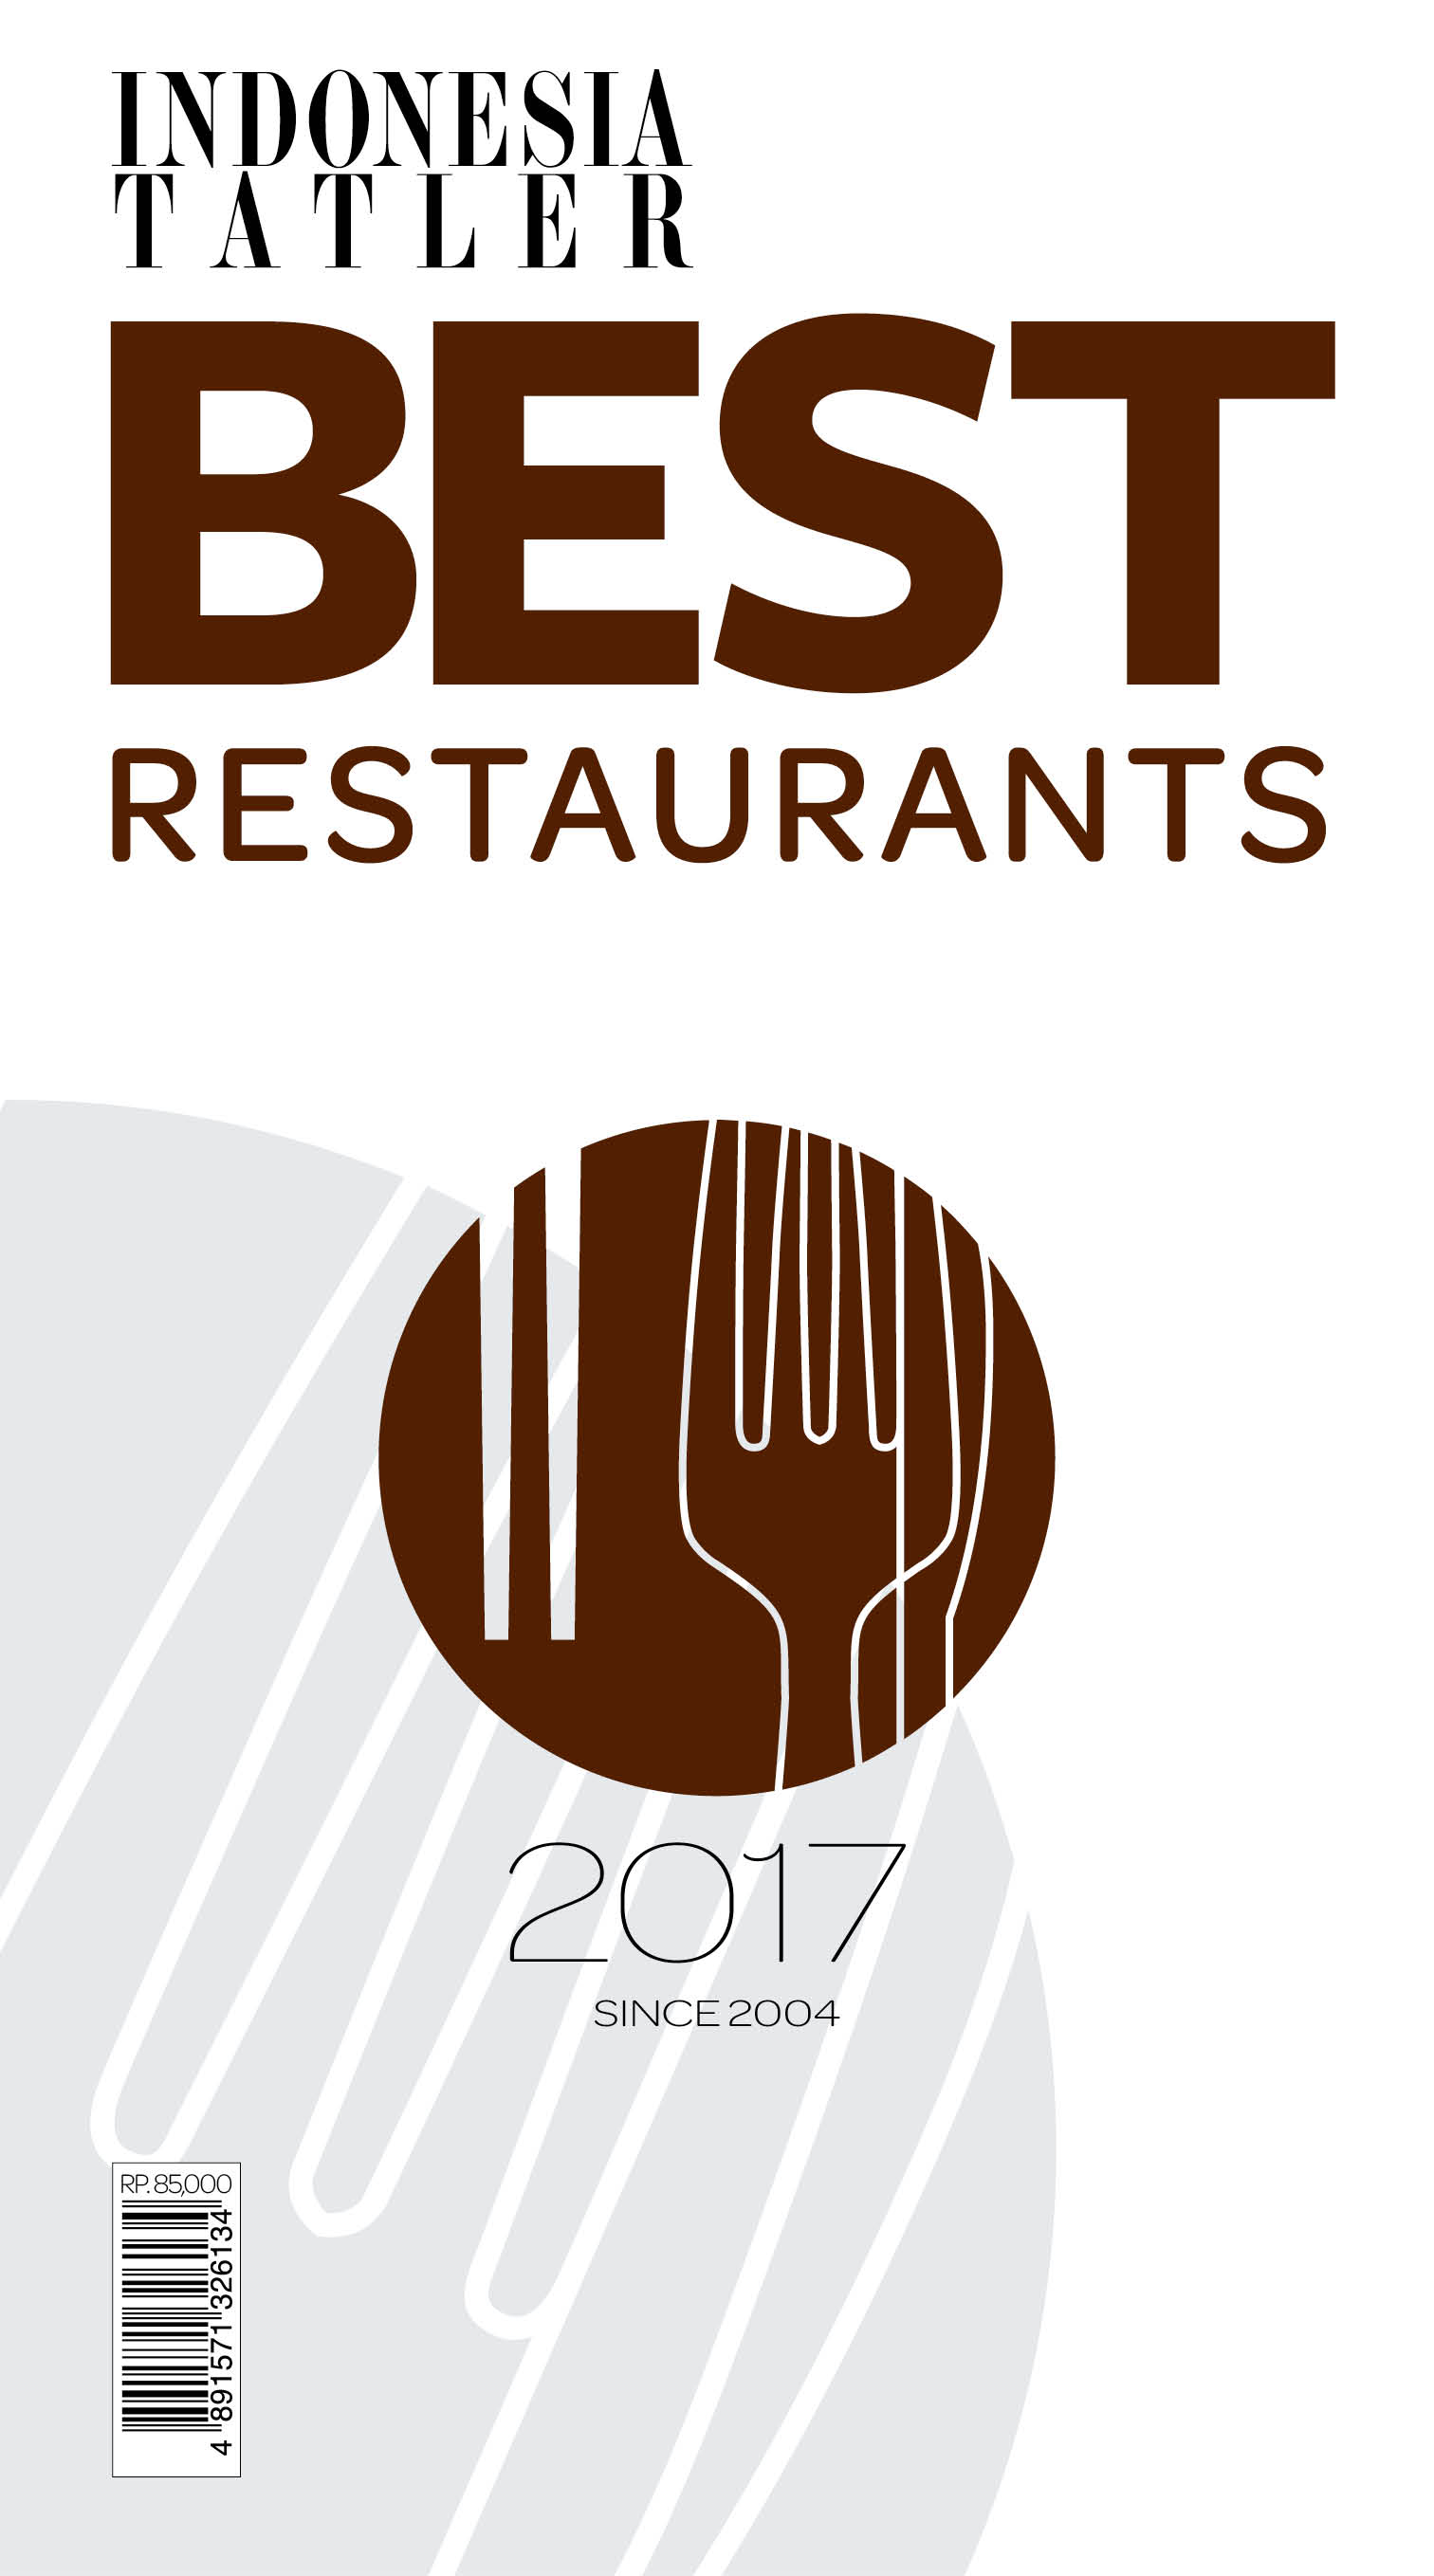 Indonesia Tatler Best Restaurant 2017